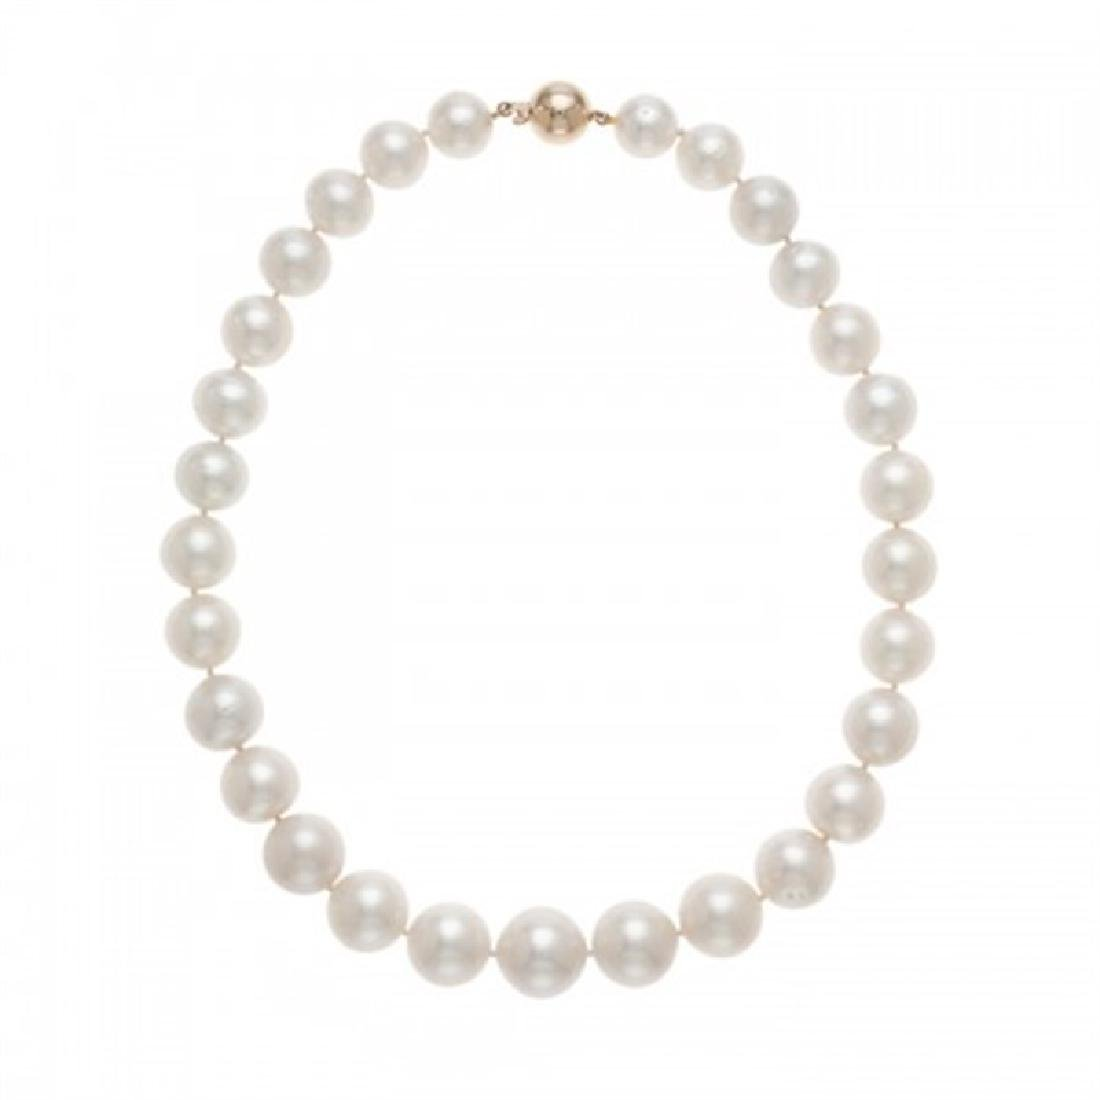 12.0-16.6mm Graduated South Sea Pearl Necklace